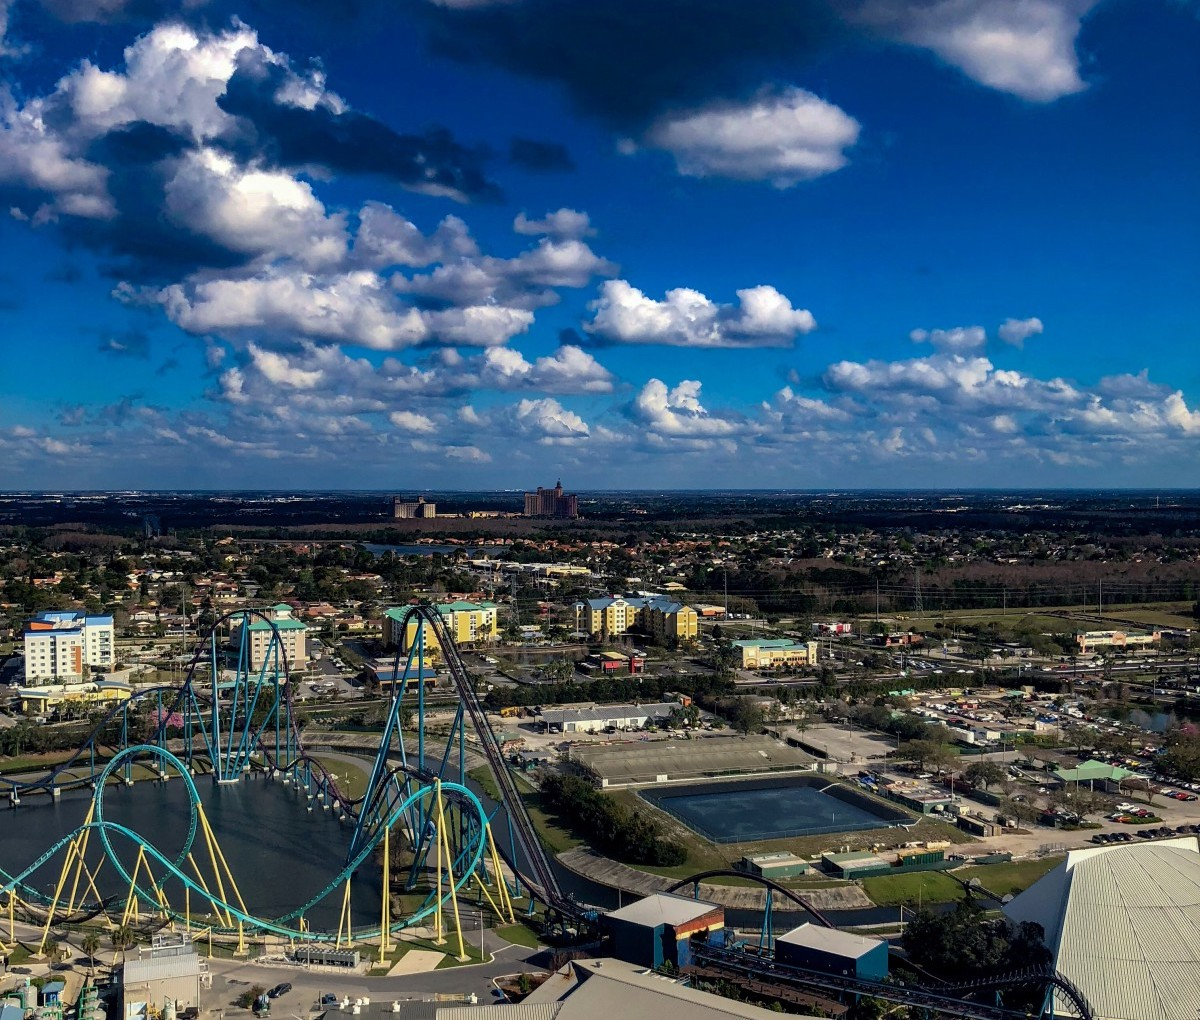 Things To Do In Orlando, Florida